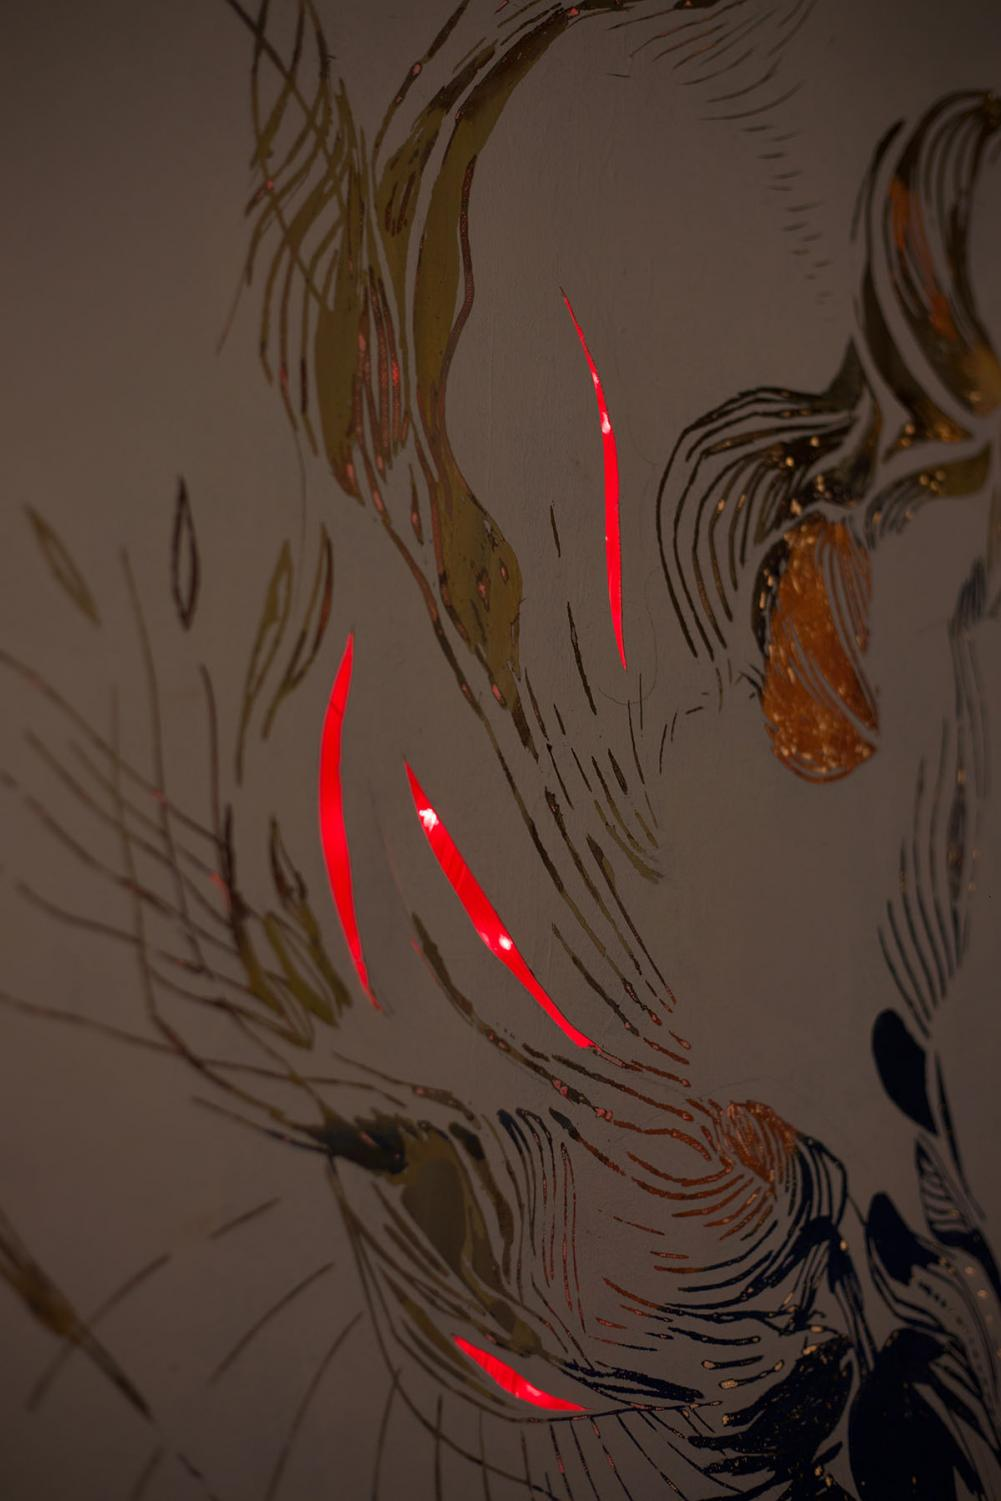 The+LED+lights+shined+through+her+painting+titled+%E2%80%9CResurfaced.%E2%80%9D